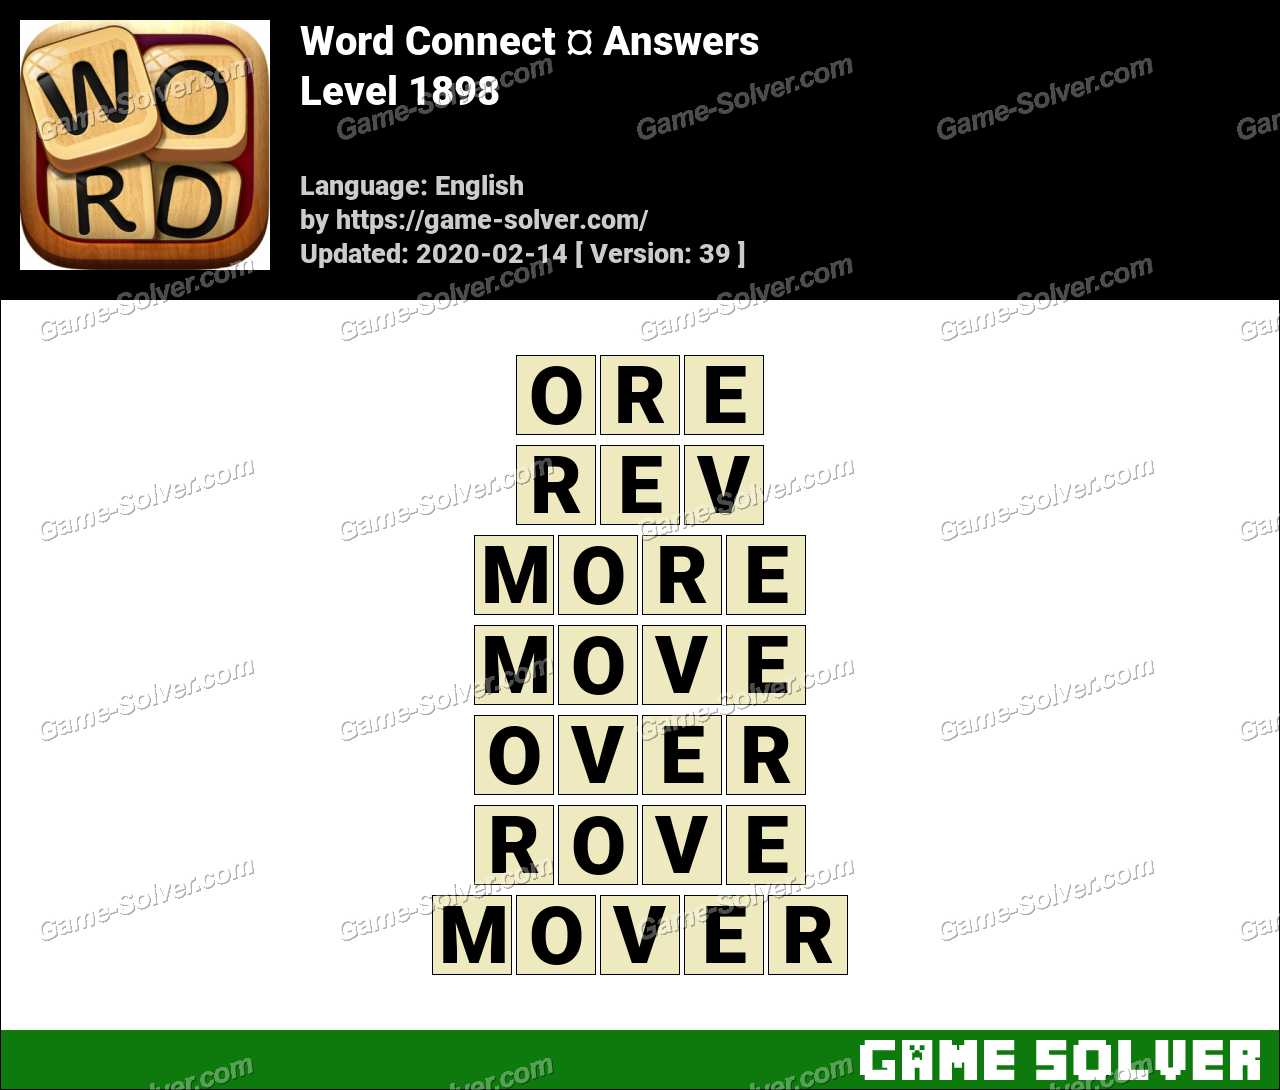 Word Connect Level 1898 Answers